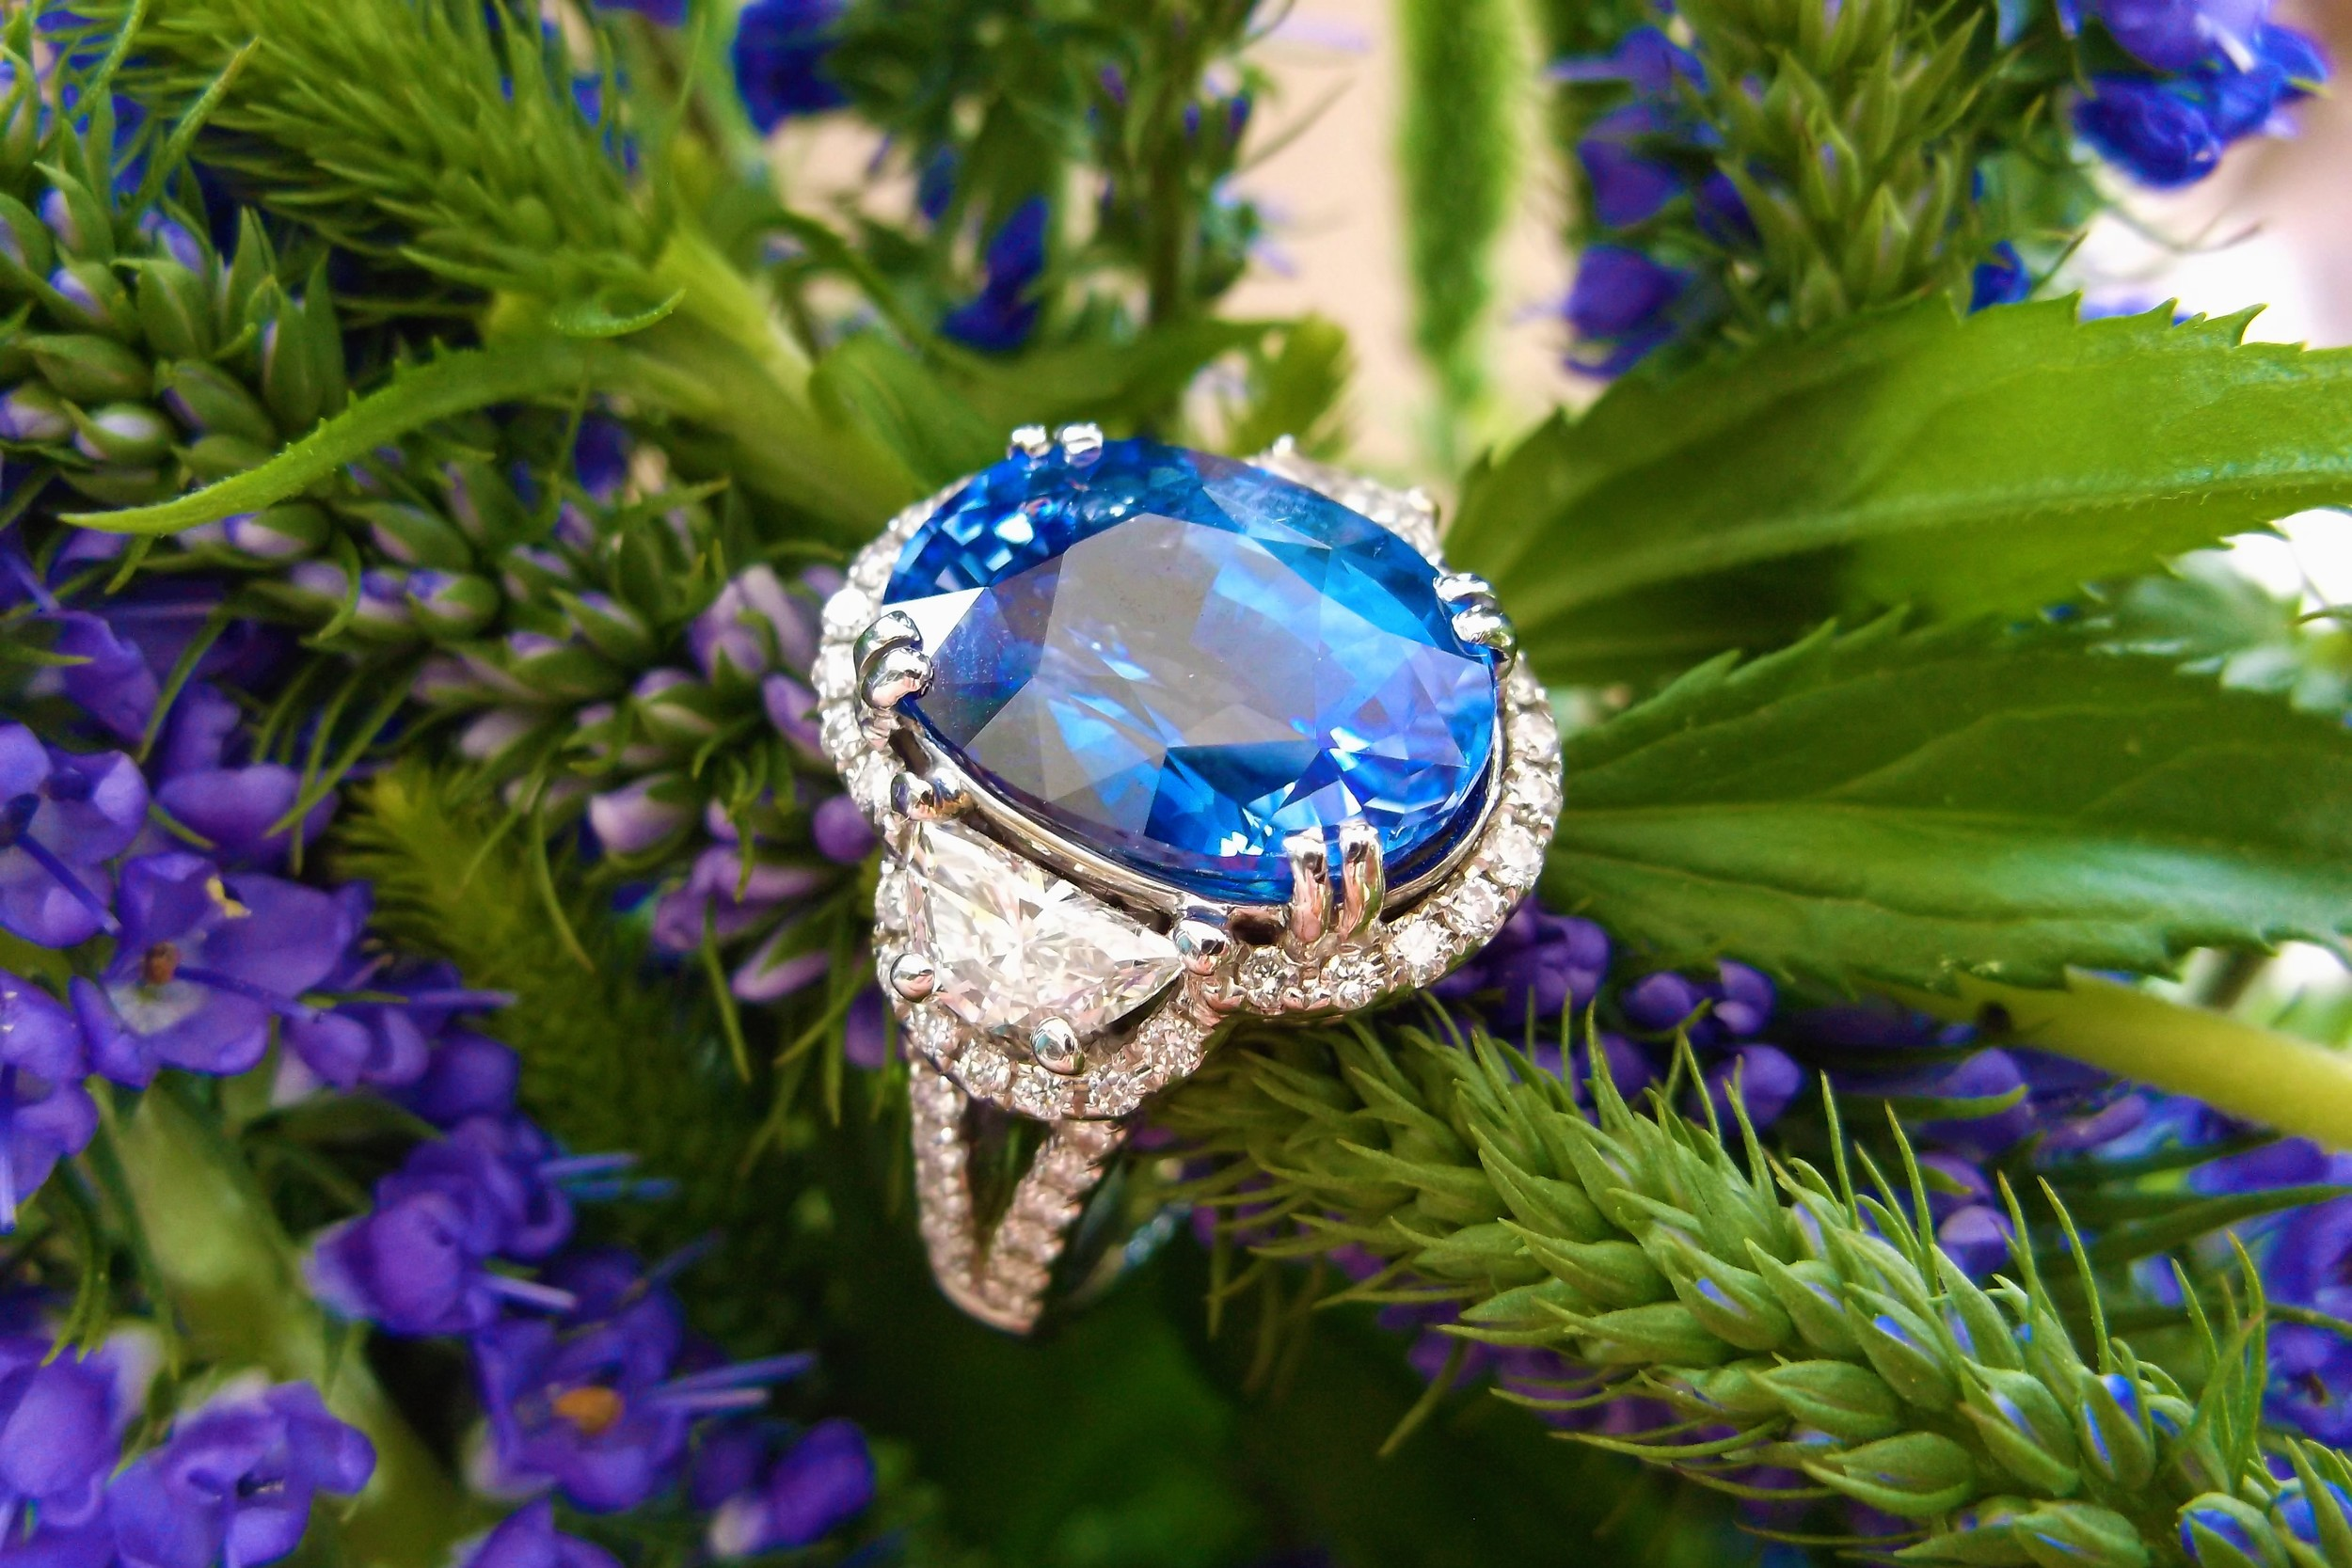 Stunningly gorgeous 8.52 carat sapphire with a half moon shaped diamond on each side surrounded by round diamonds set in white gold (1.24 carats total weight in diamonds!).